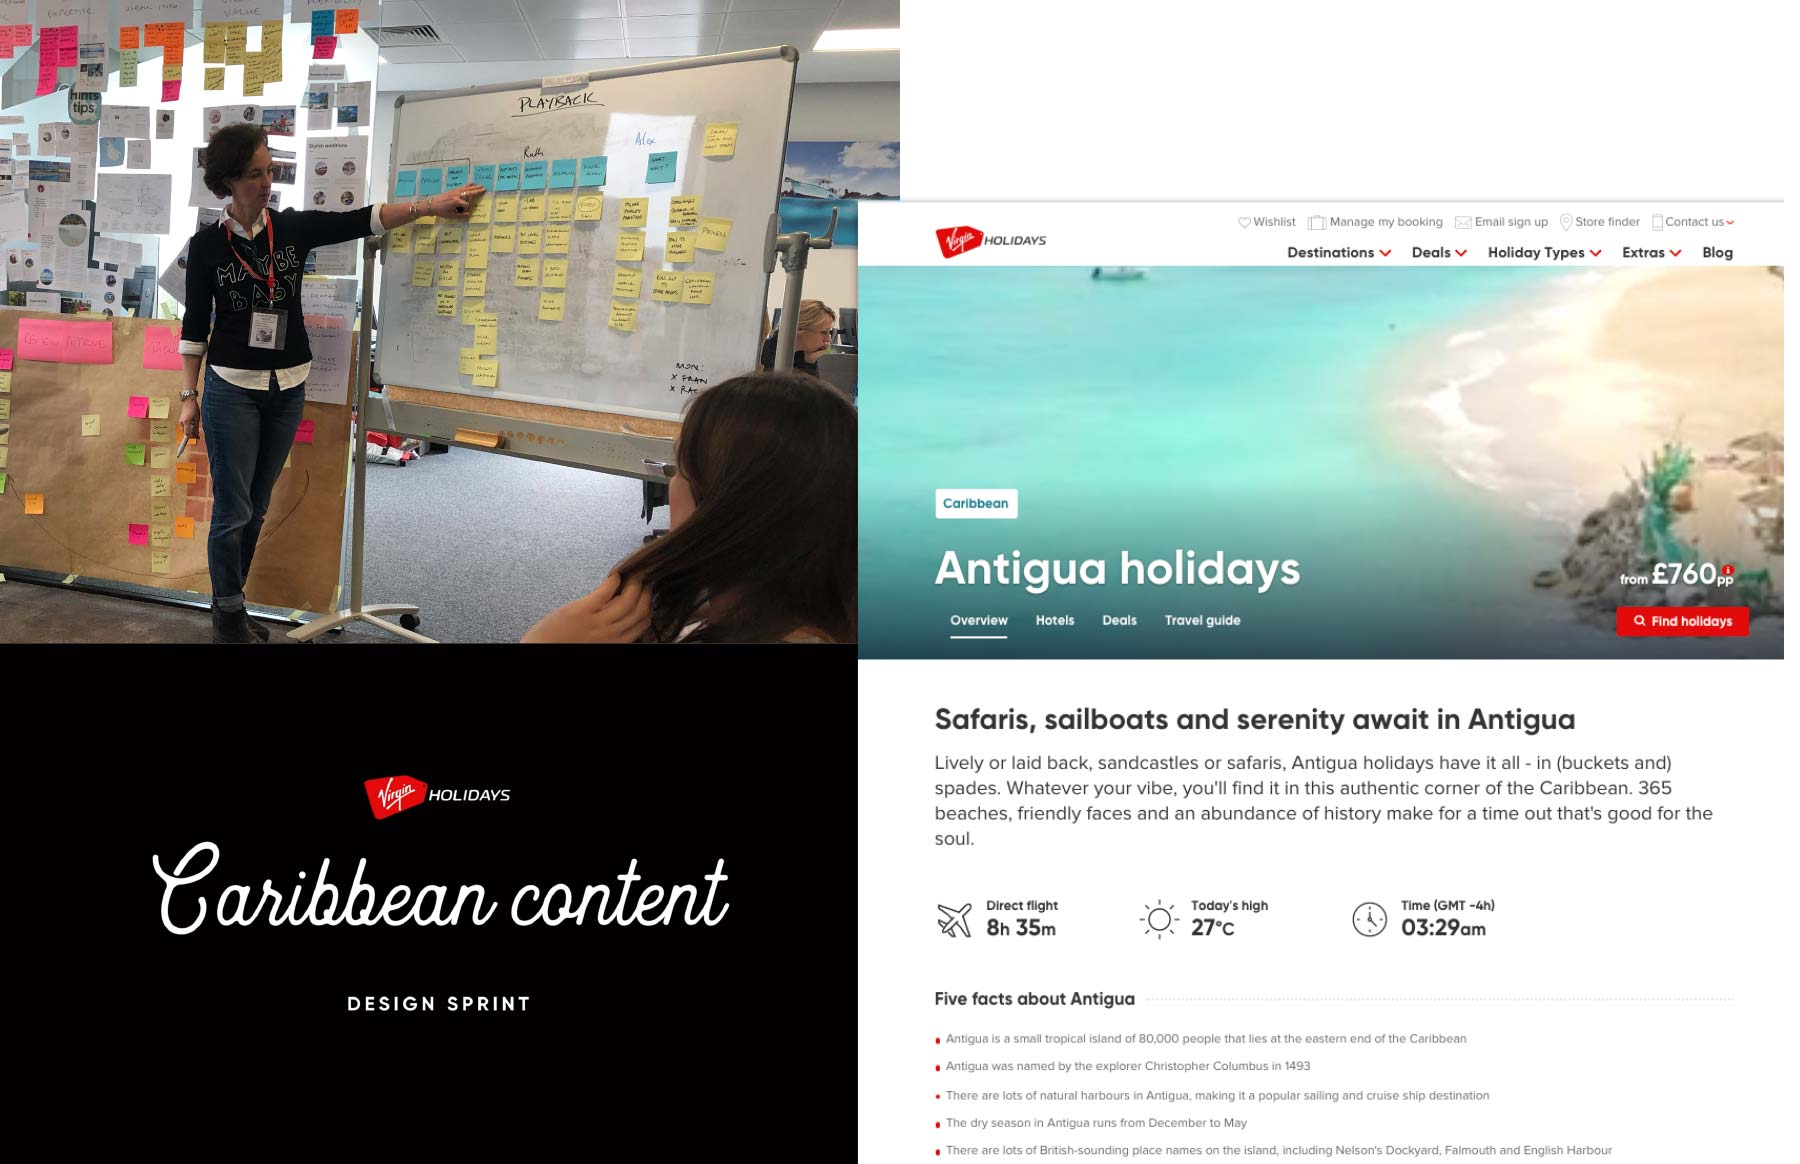 Virgin Holidays content strategy